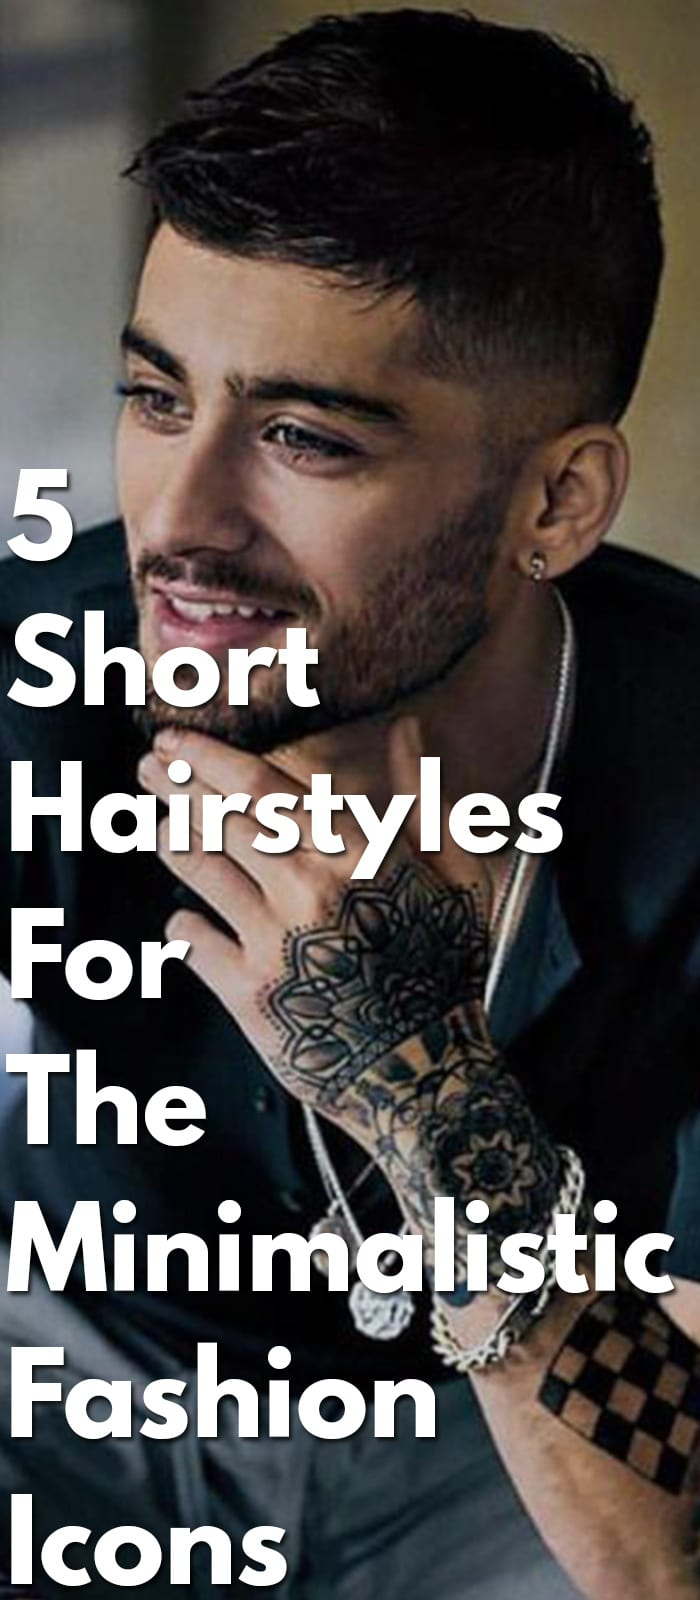 5-Short-Hairstyles-For-The-Minimalistic-Fashion-Icons